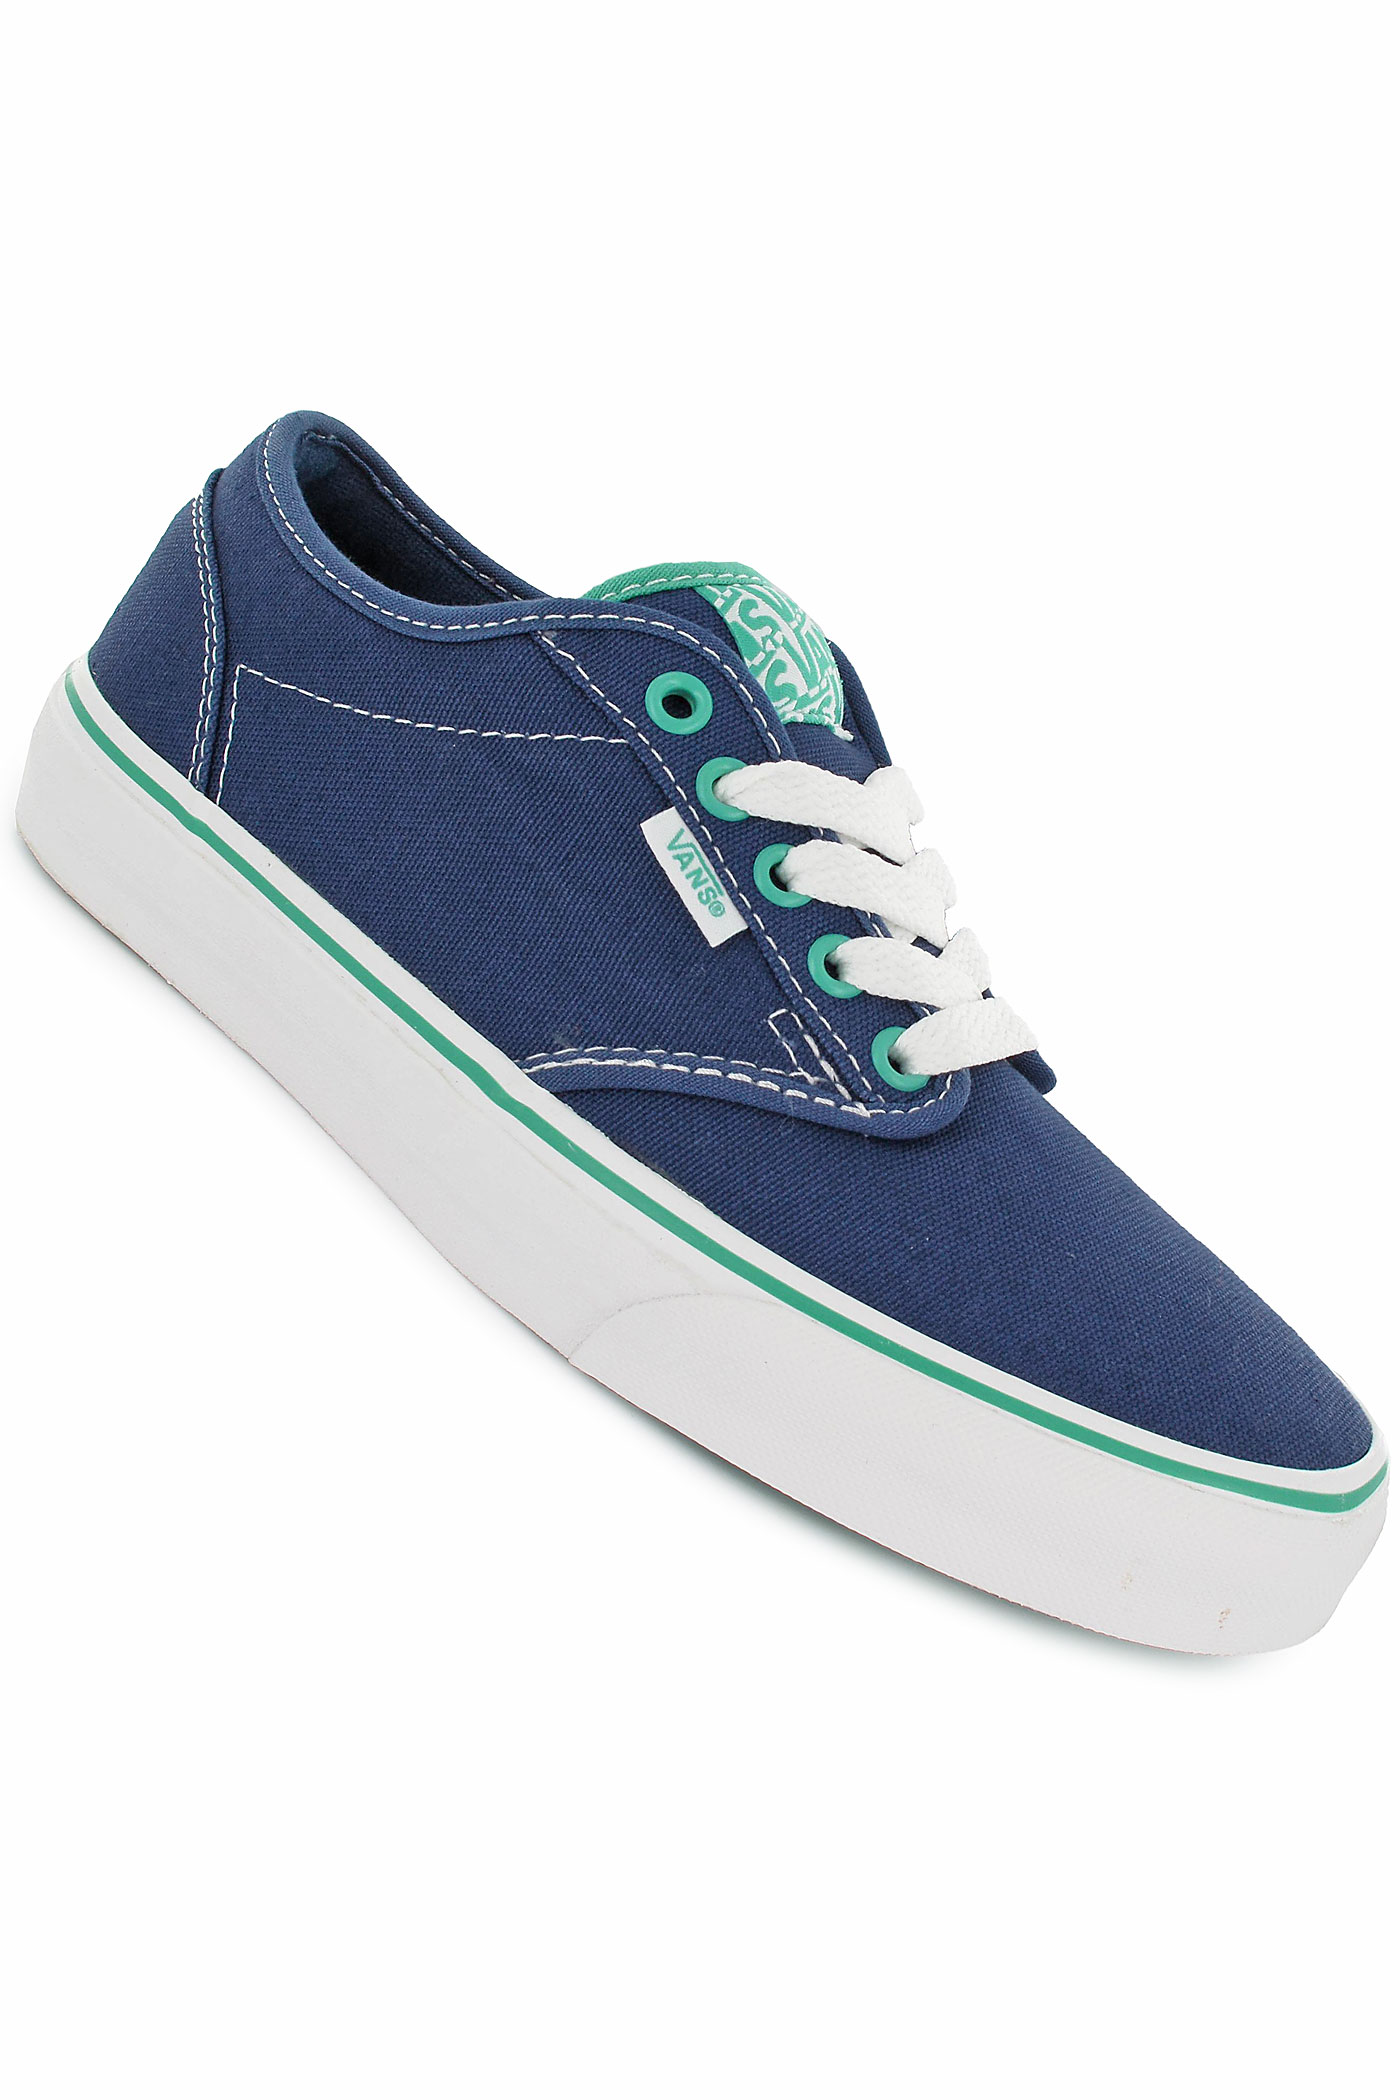 Model  To Review Vans Old Skool All Blue Womens Shoes Cancel Reply